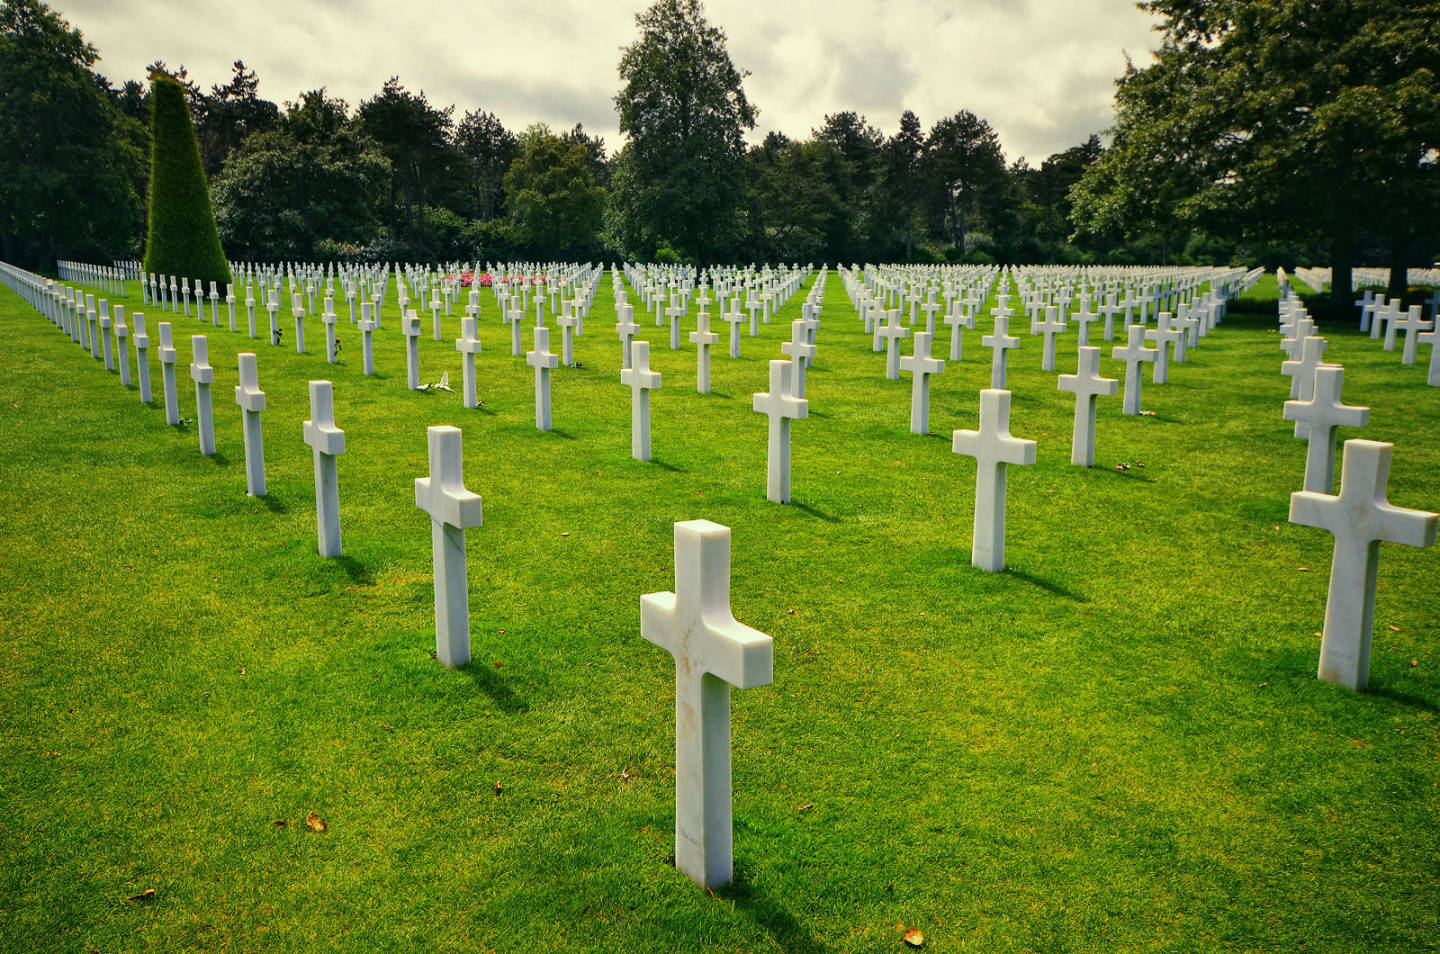 American Cemetery in Normandy (Omaha Beach)